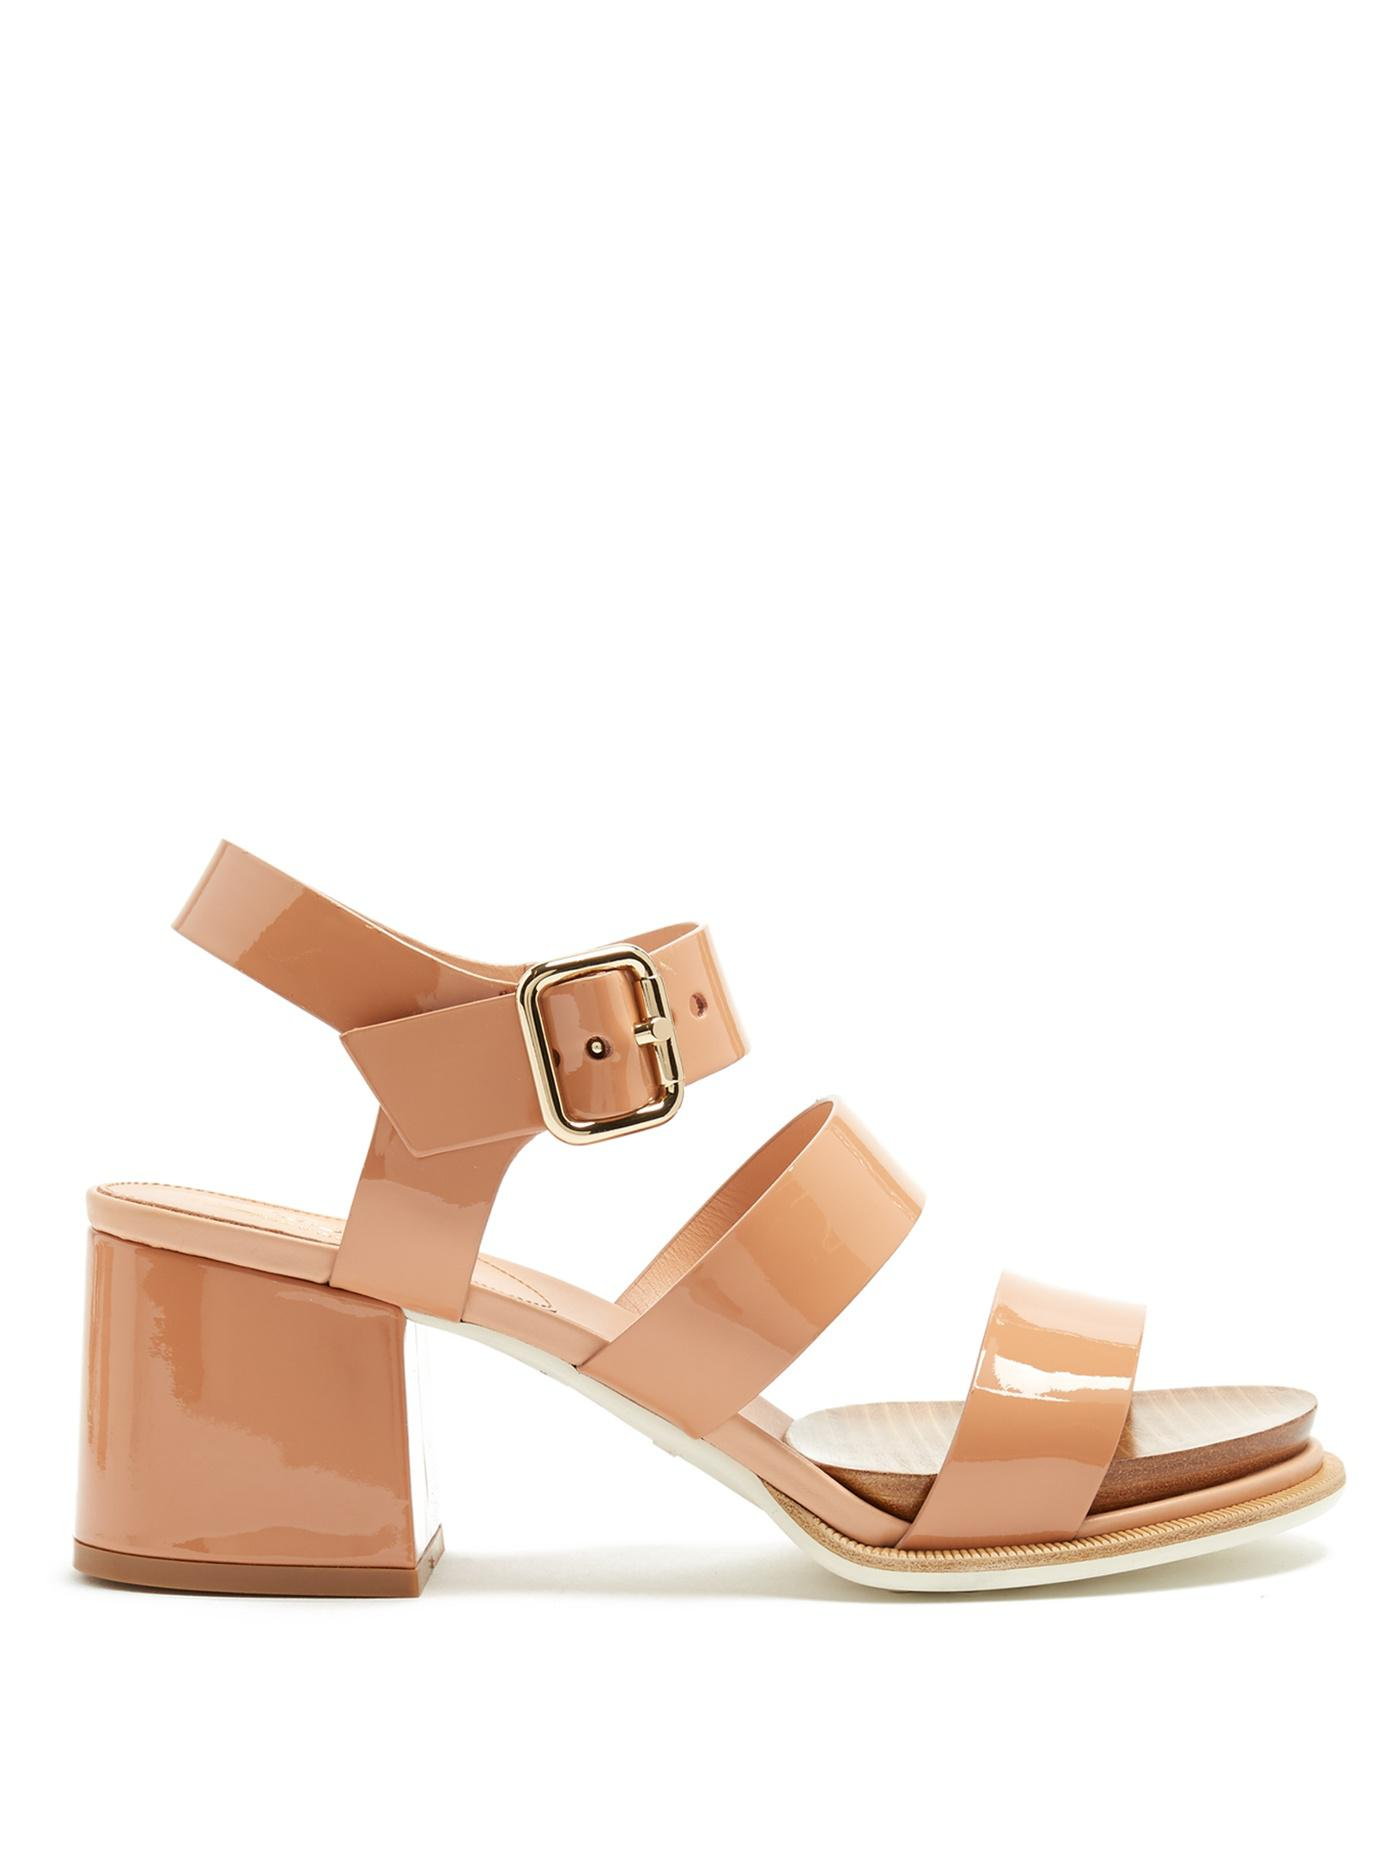 Tod's Patent Leather Heeled Sandal Brand New Unisex Cheap Online Sale Comfortable Cheap Sale Low Shipping Free Shipping Footlocker Sale Limited Edition 6wRzlWTtTd